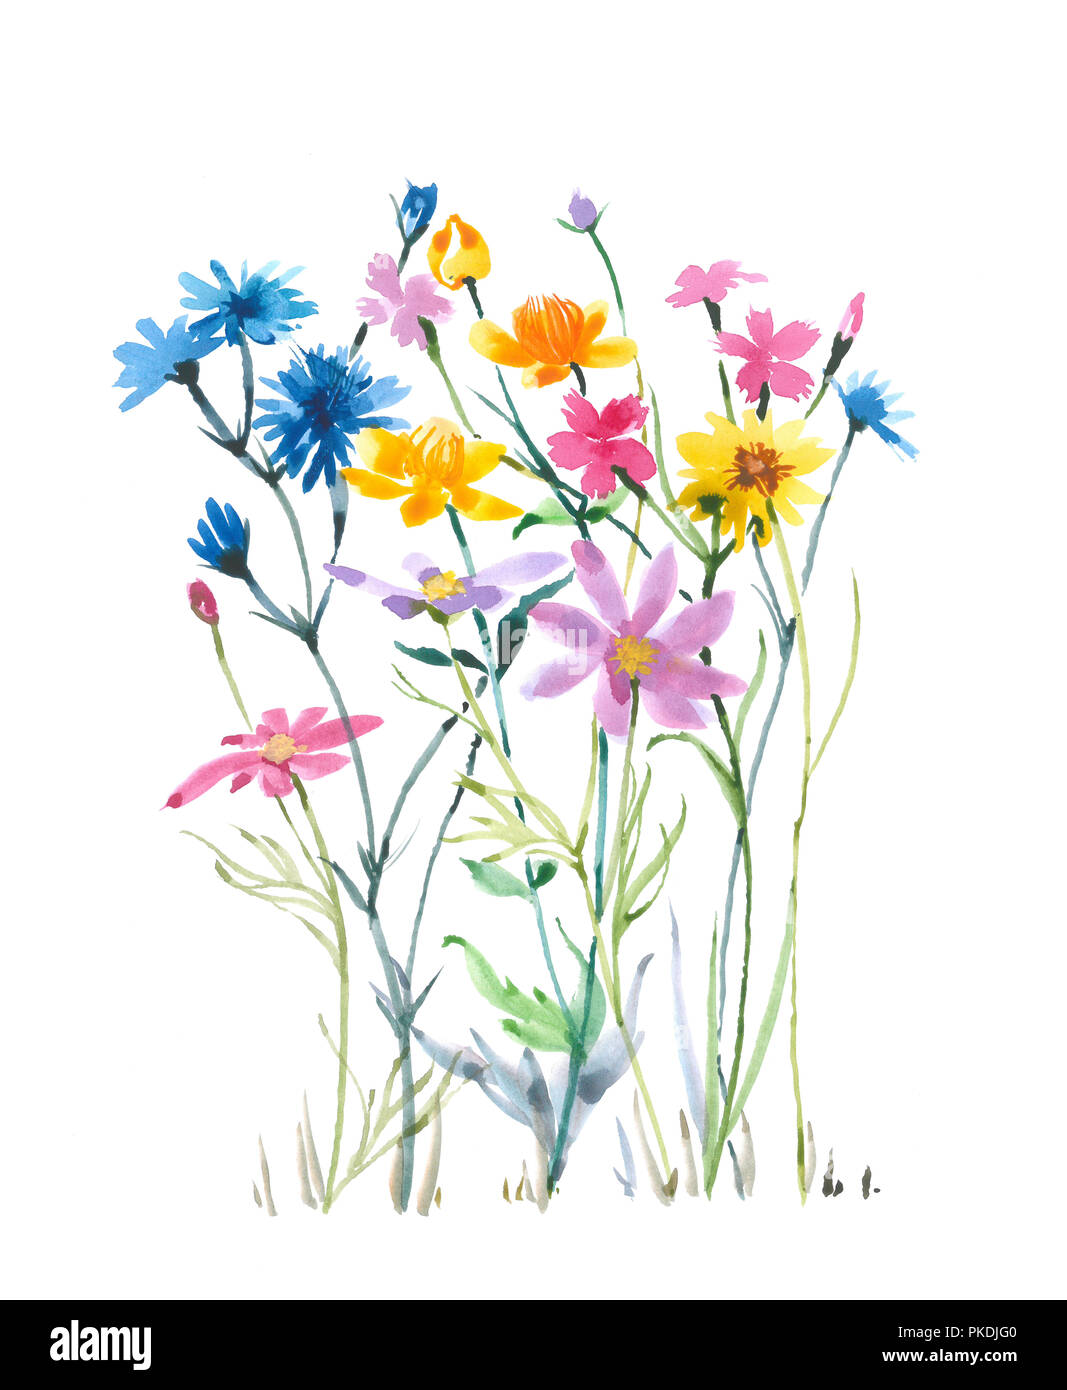 Romantic Wild Flowers Watercolor Flowers Watercolor Background